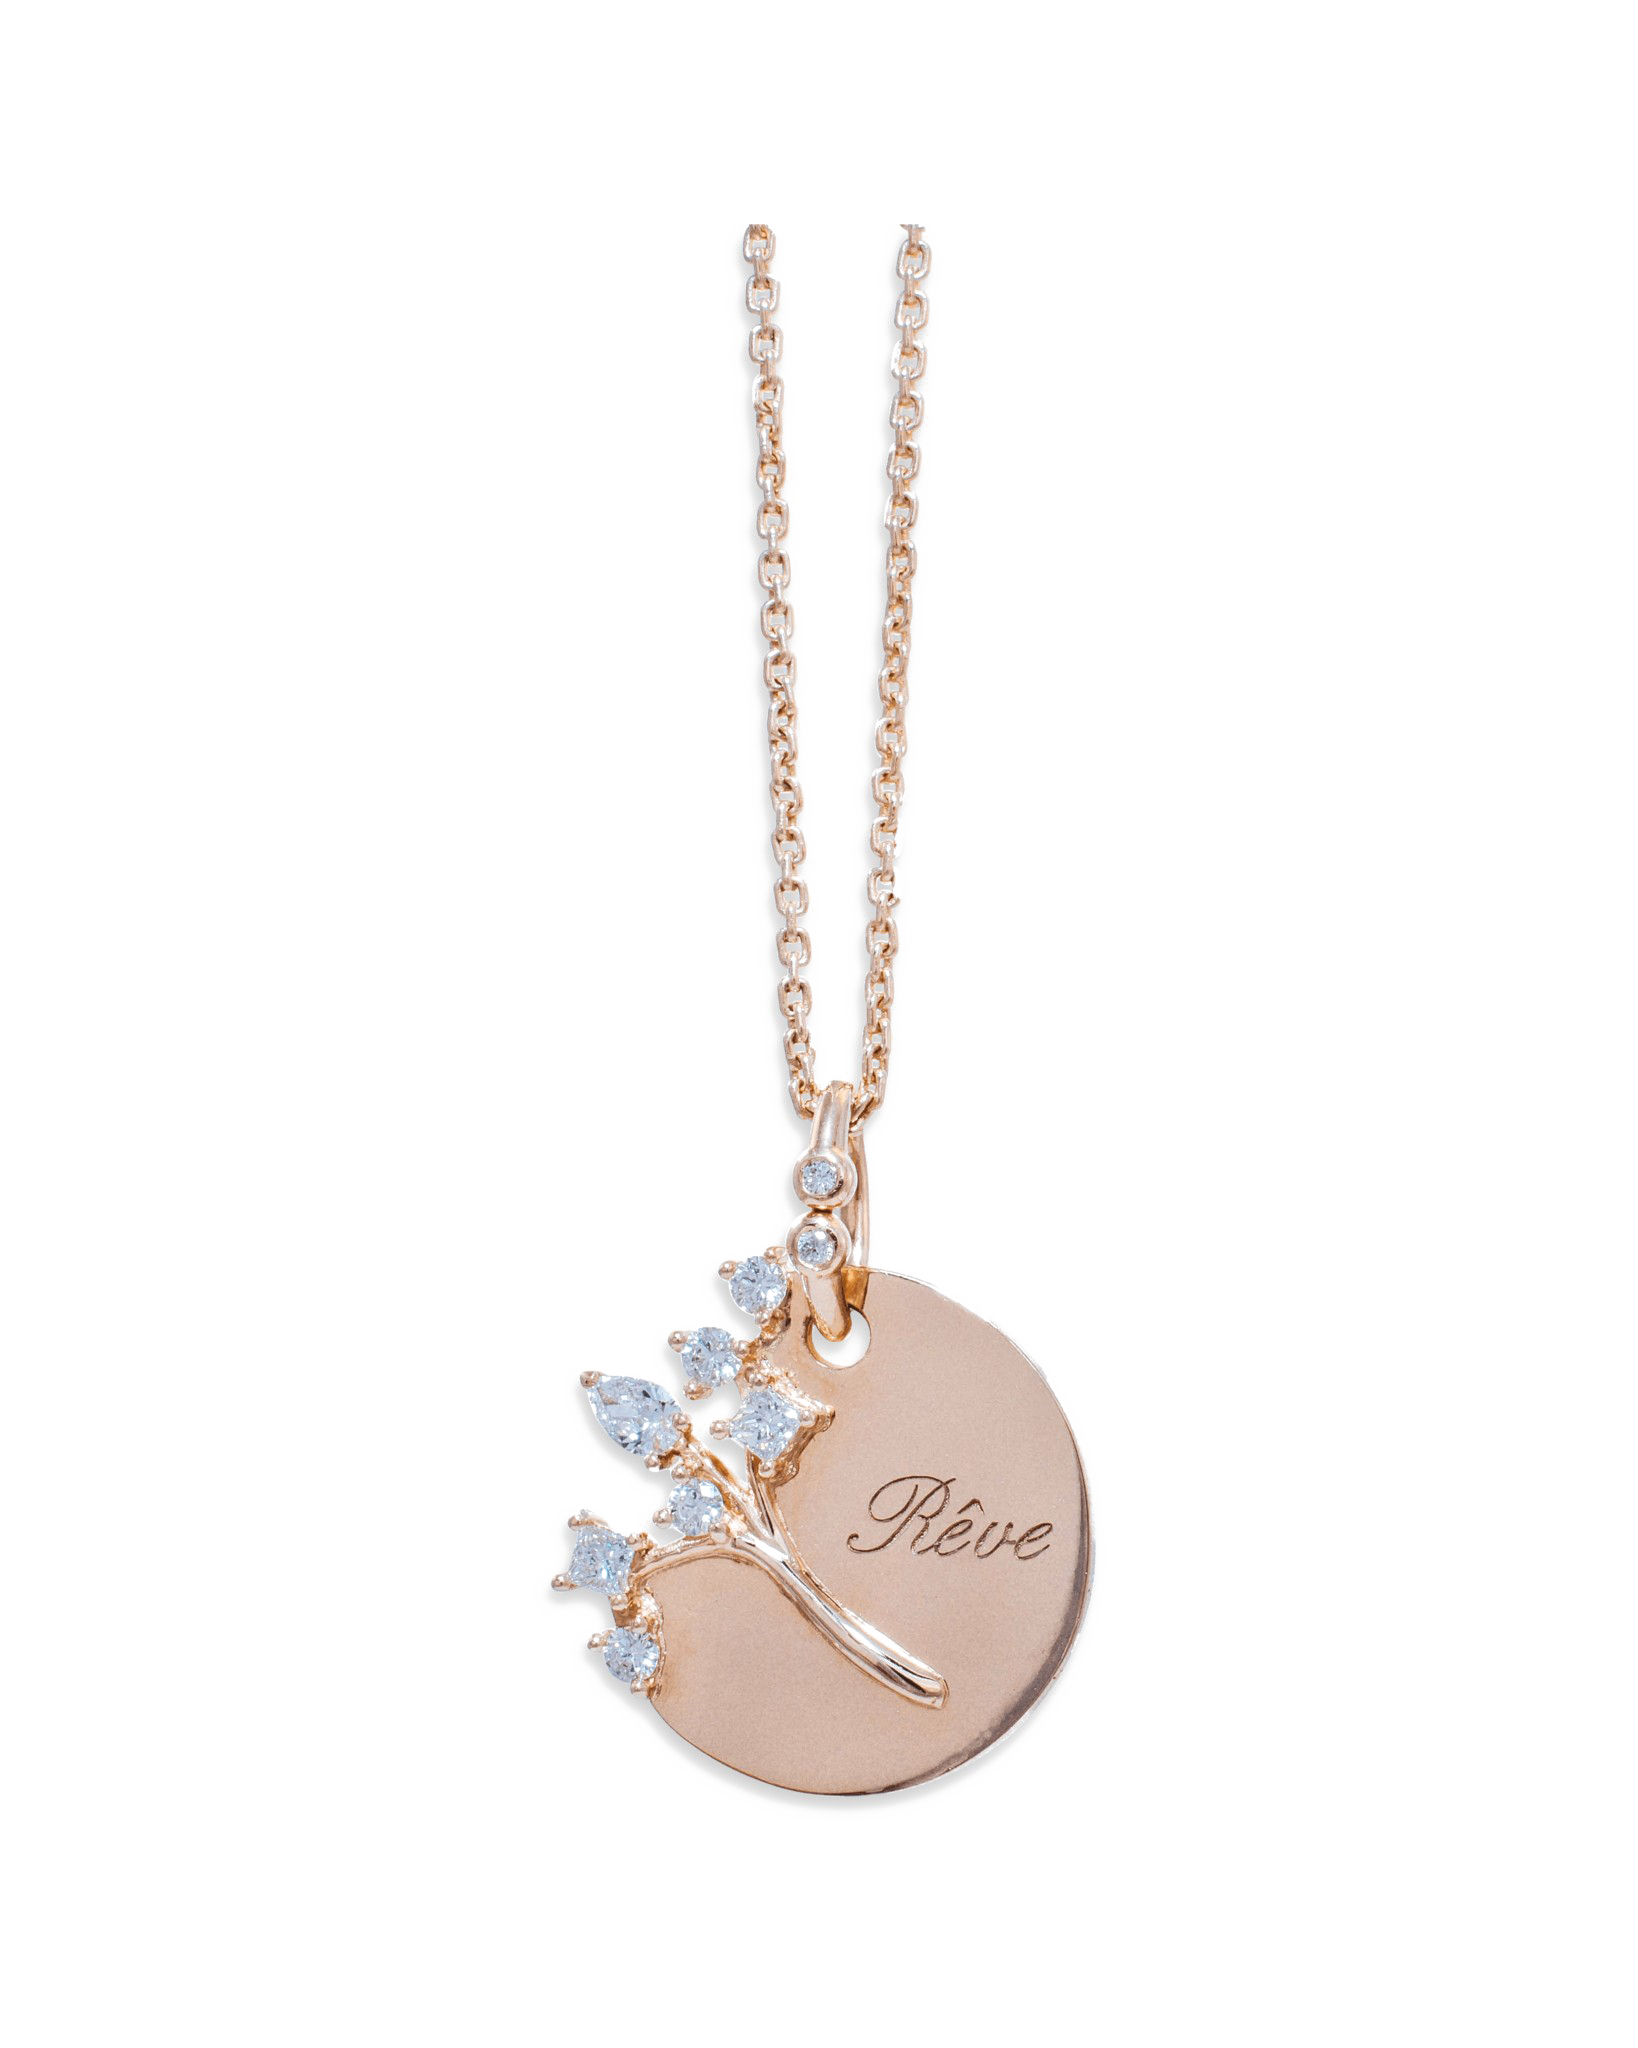 uploads necklace necklace PNG48 43